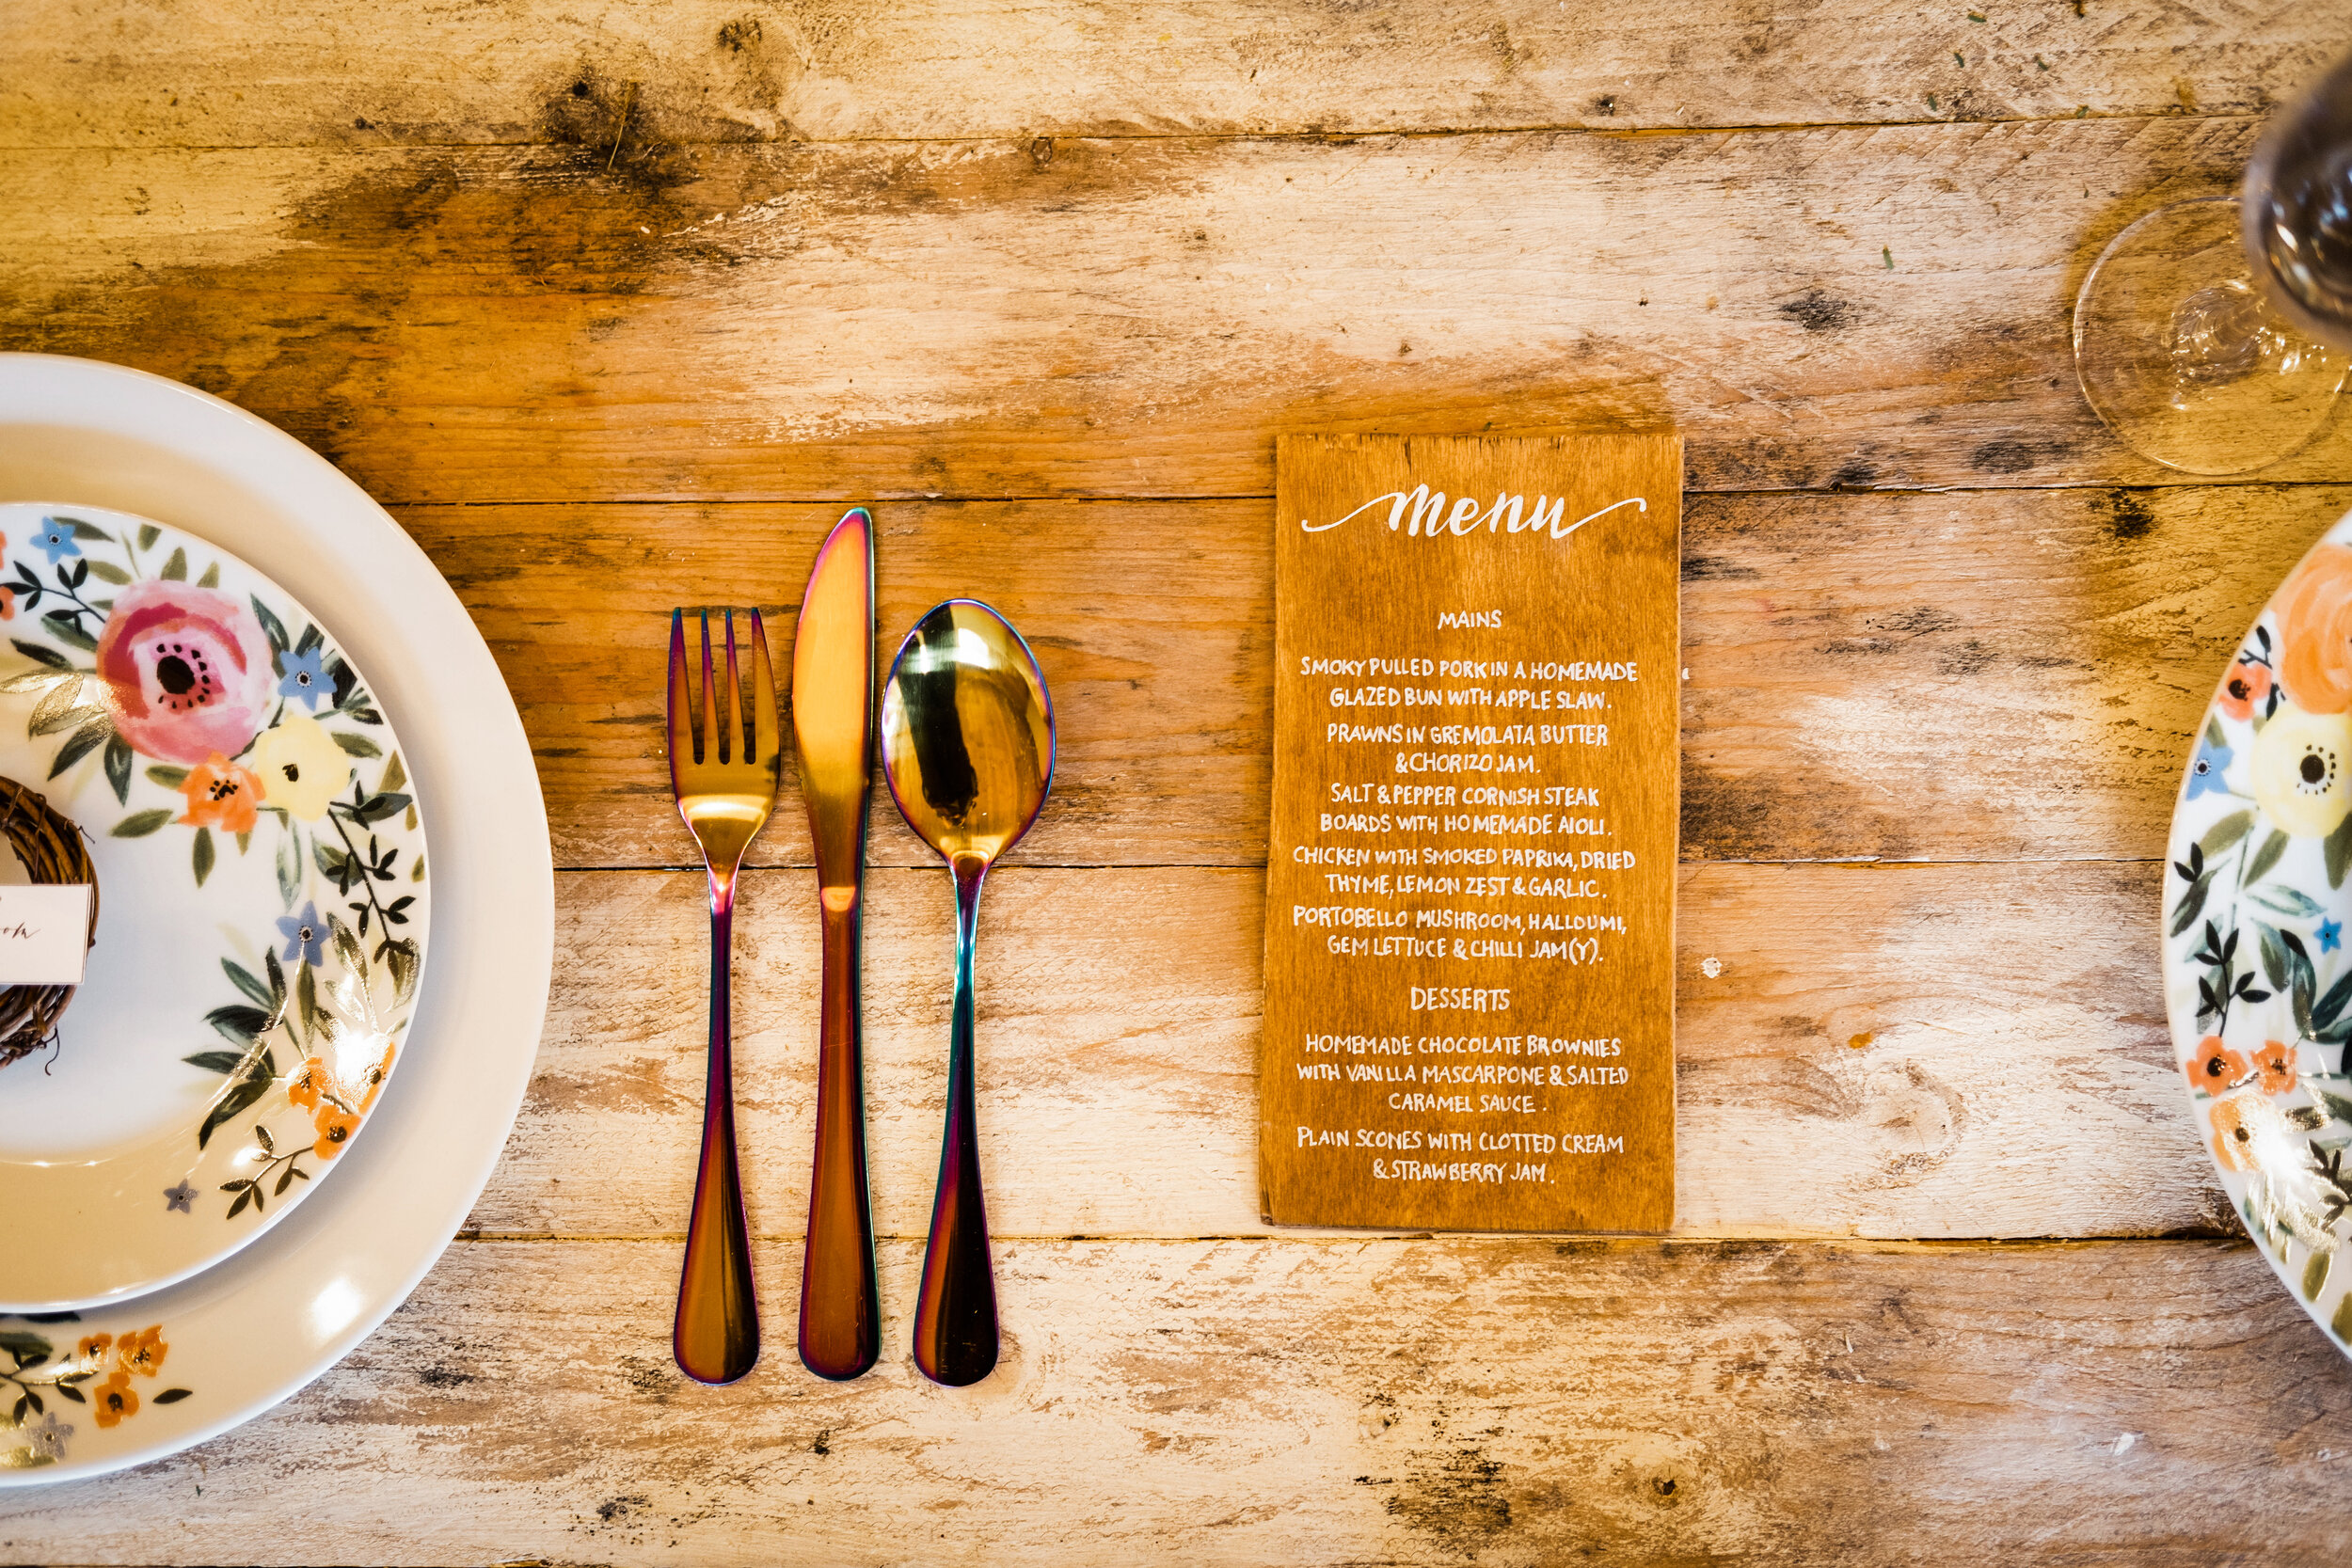 The Cow Shed Menu